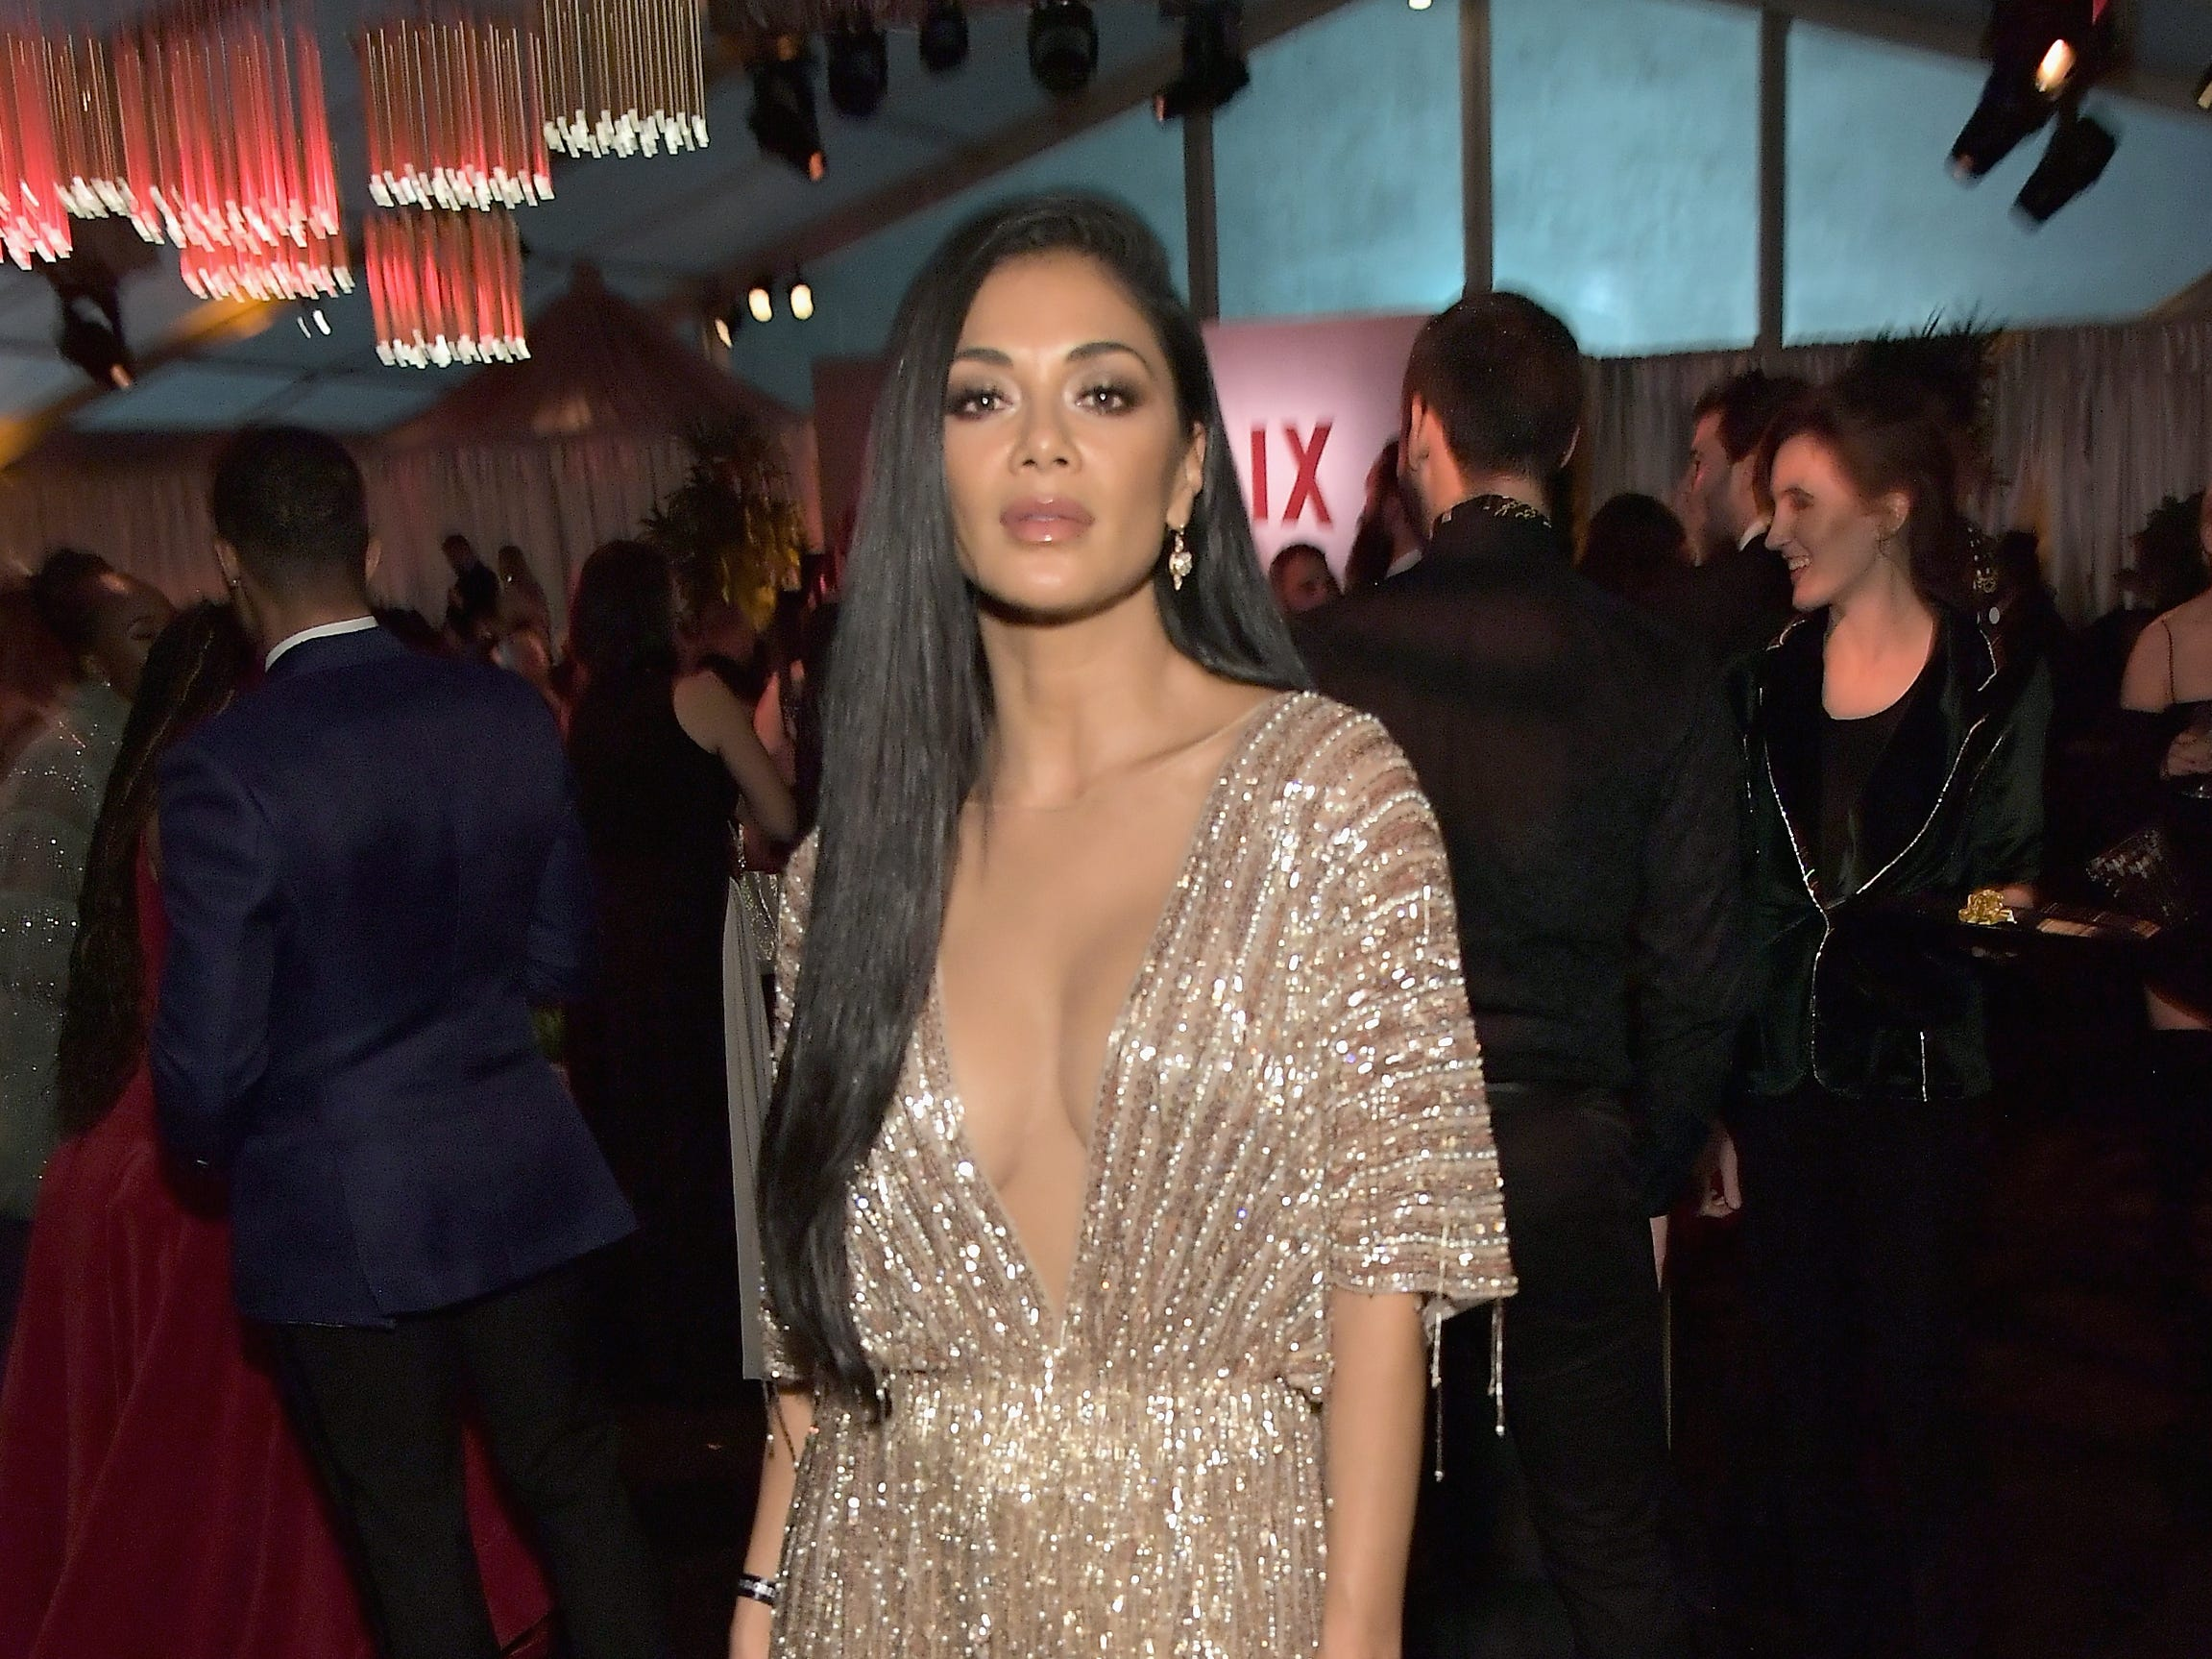 LOS ANGELES, CA - JANUARY 06:  Nicole Scherzinger attends the Netflix 2019 Golden Globes After Party on January 6, 2019 in Los Angeles, California.  (Photo by Charley Gallay/Getty Images for Netflix) ORG XMIT: 775263107 ORIG FILE ID: 1078656156